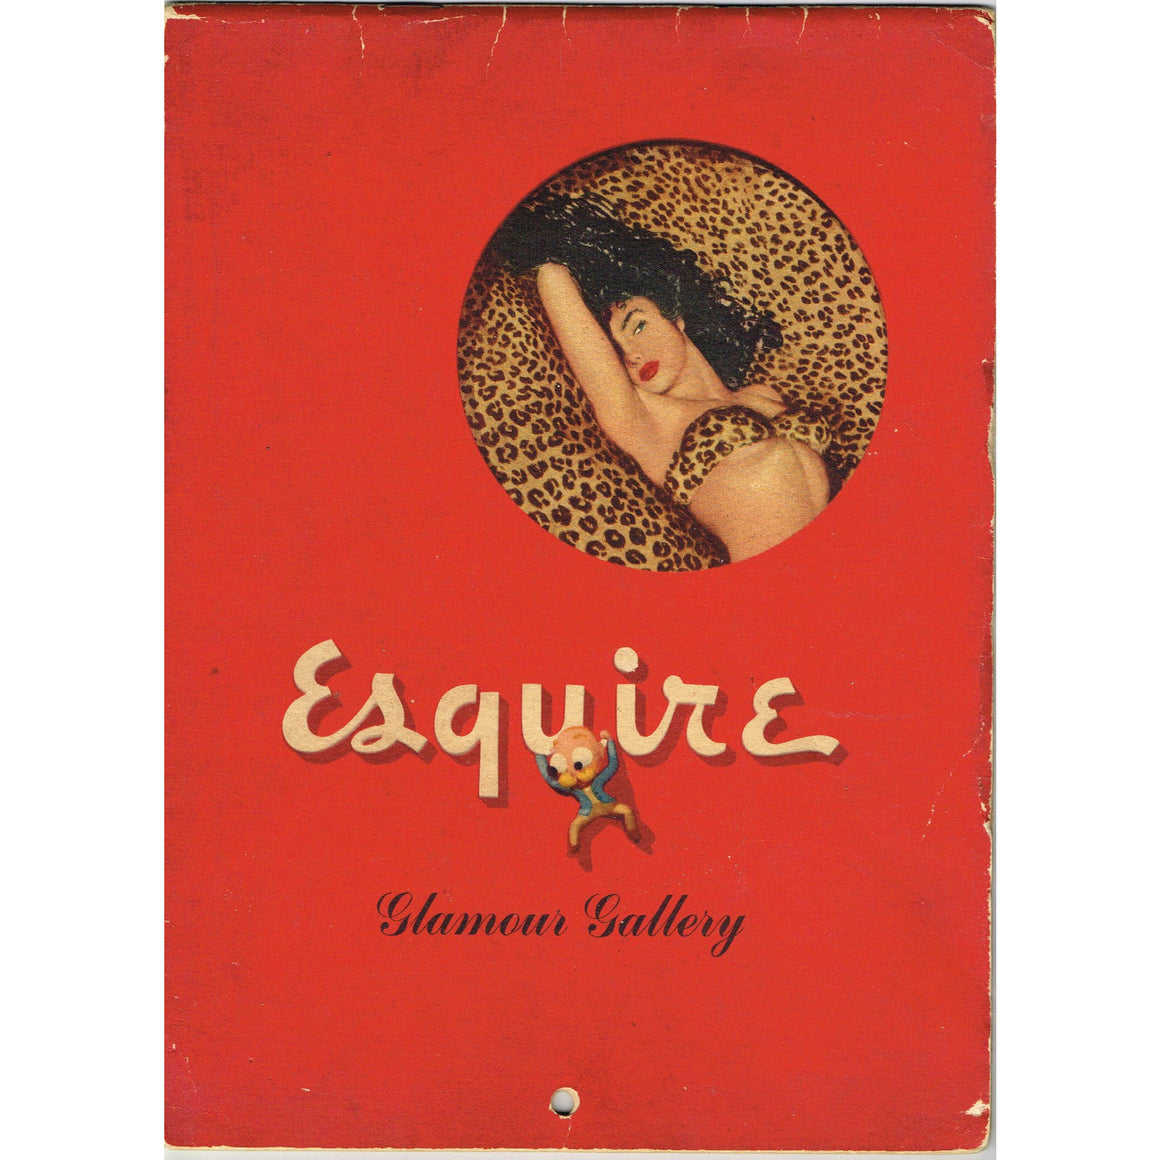 Esquire Glamour Gallery